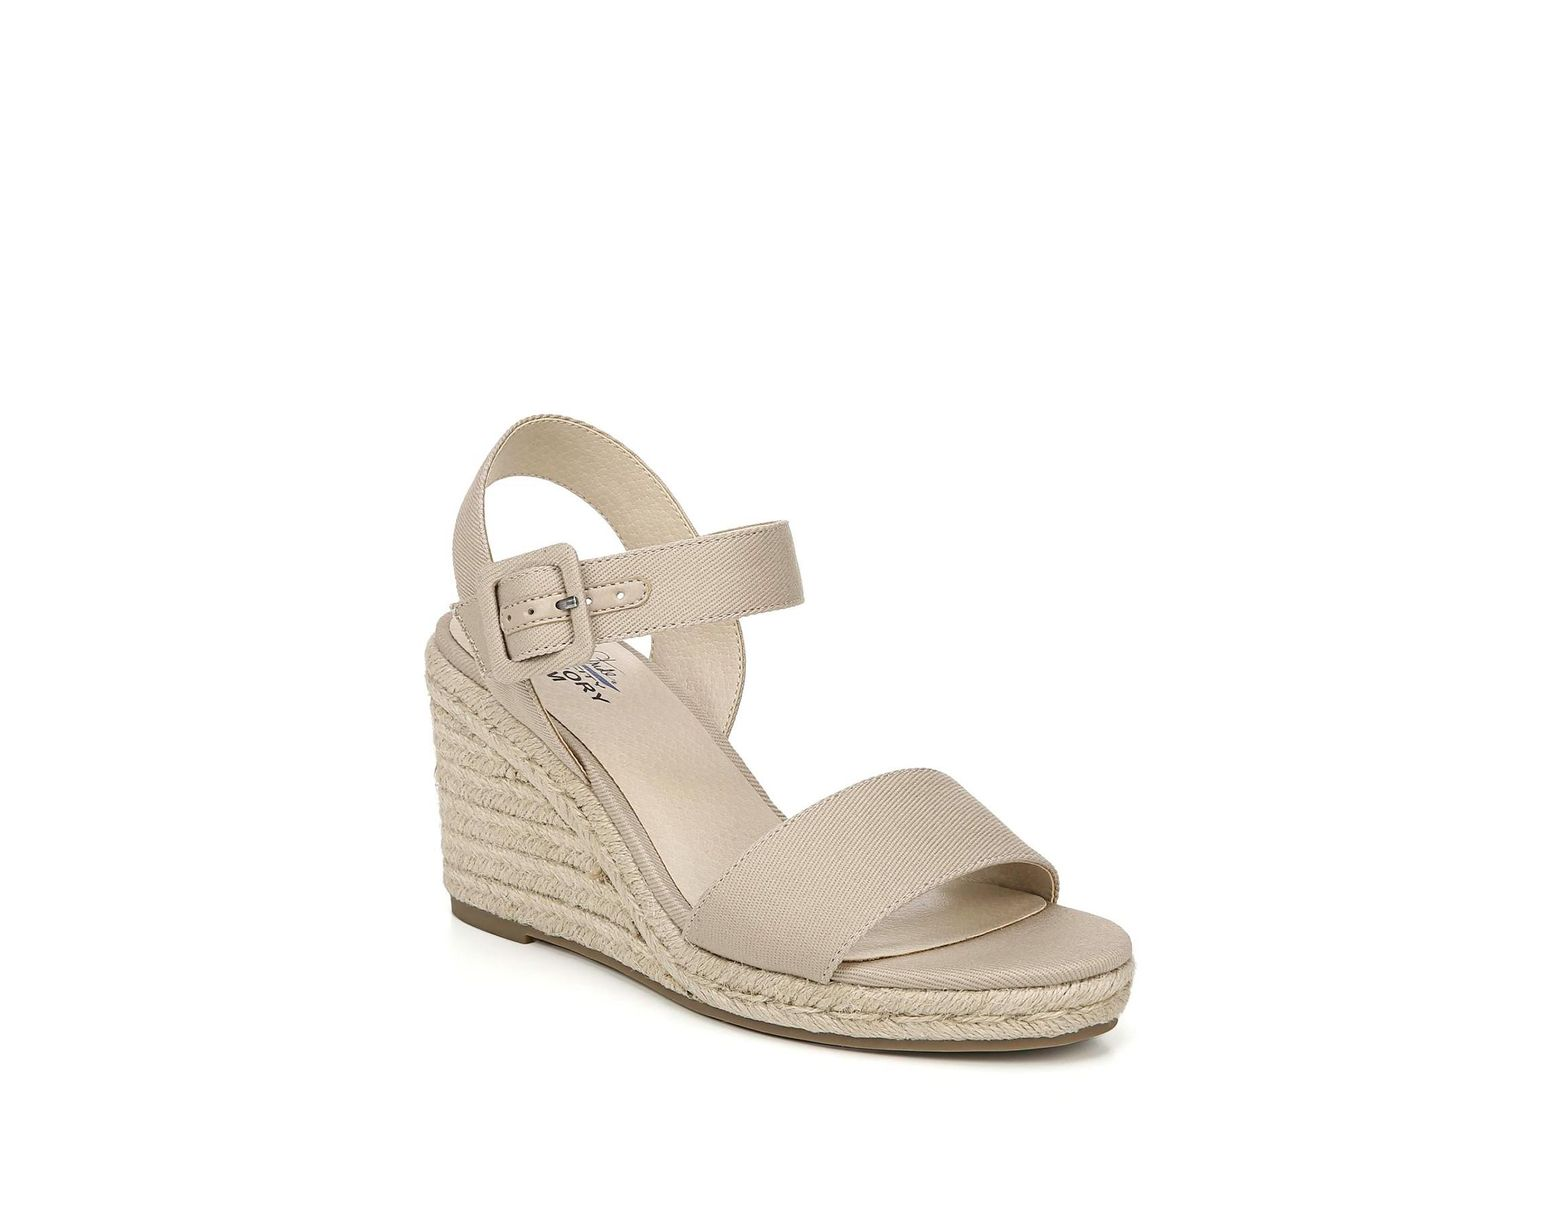 d8d30886f00 LifeStride Tango Espadrille Wedge Sandal - Wide Width Available - Lyst